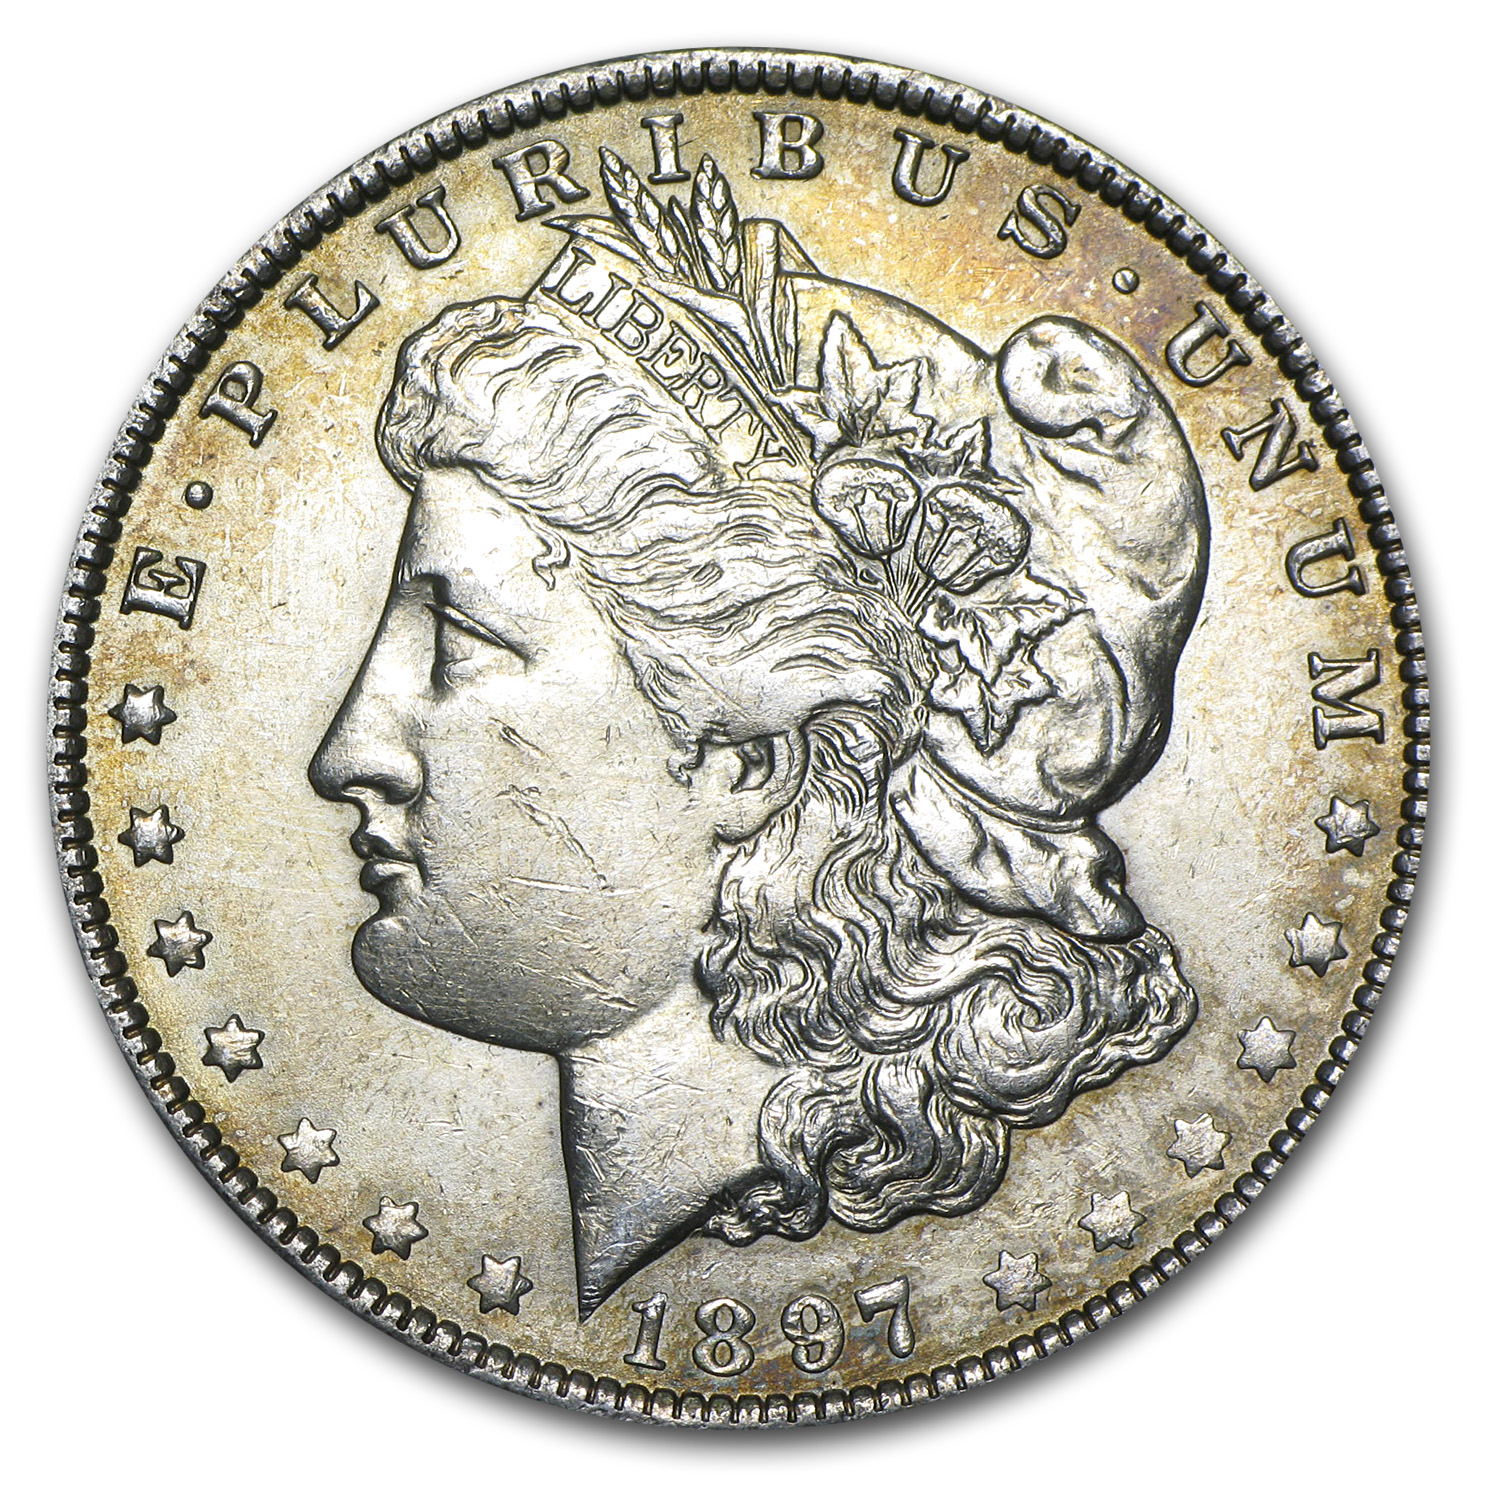 1897-O Morgan Dollar BU Details (Cleaned)